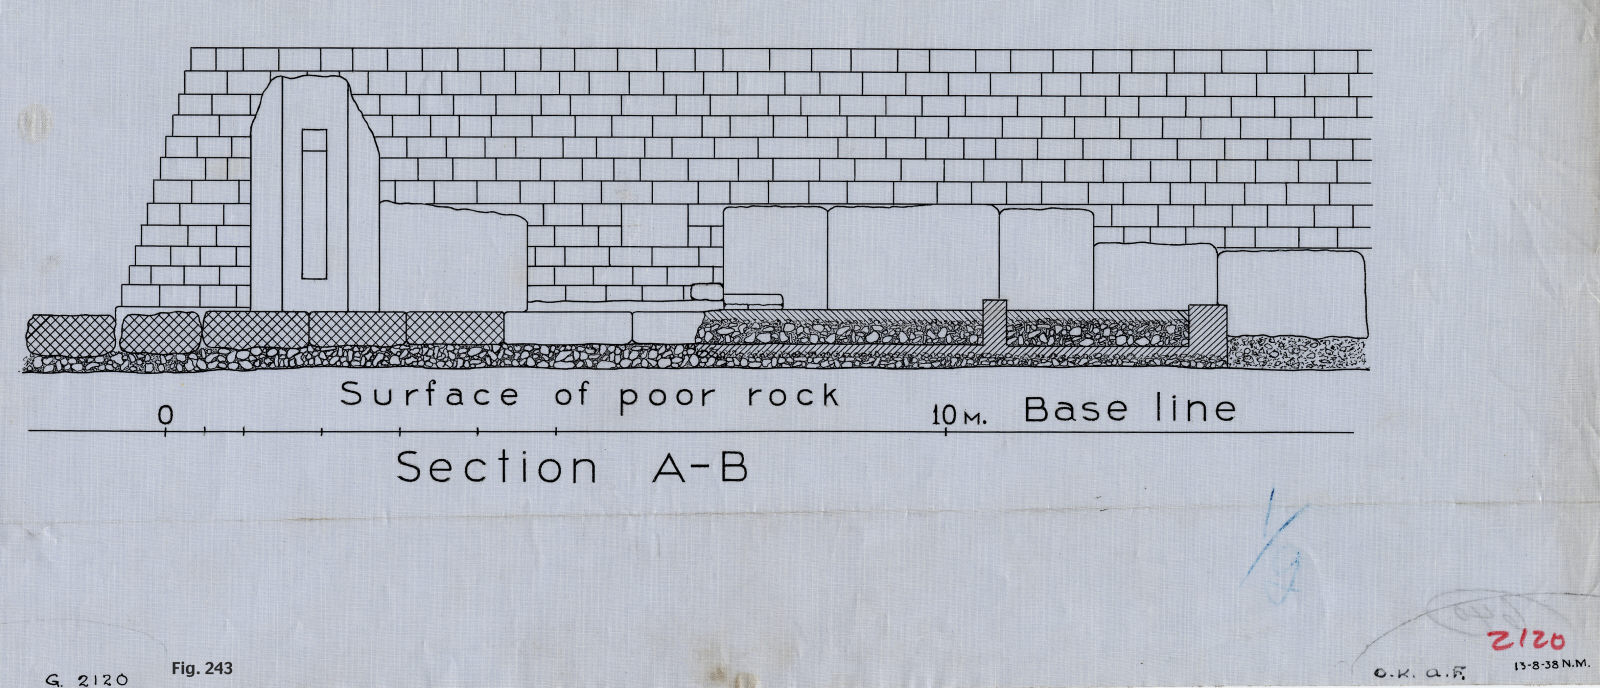 Maps and plans: G 2120, Section